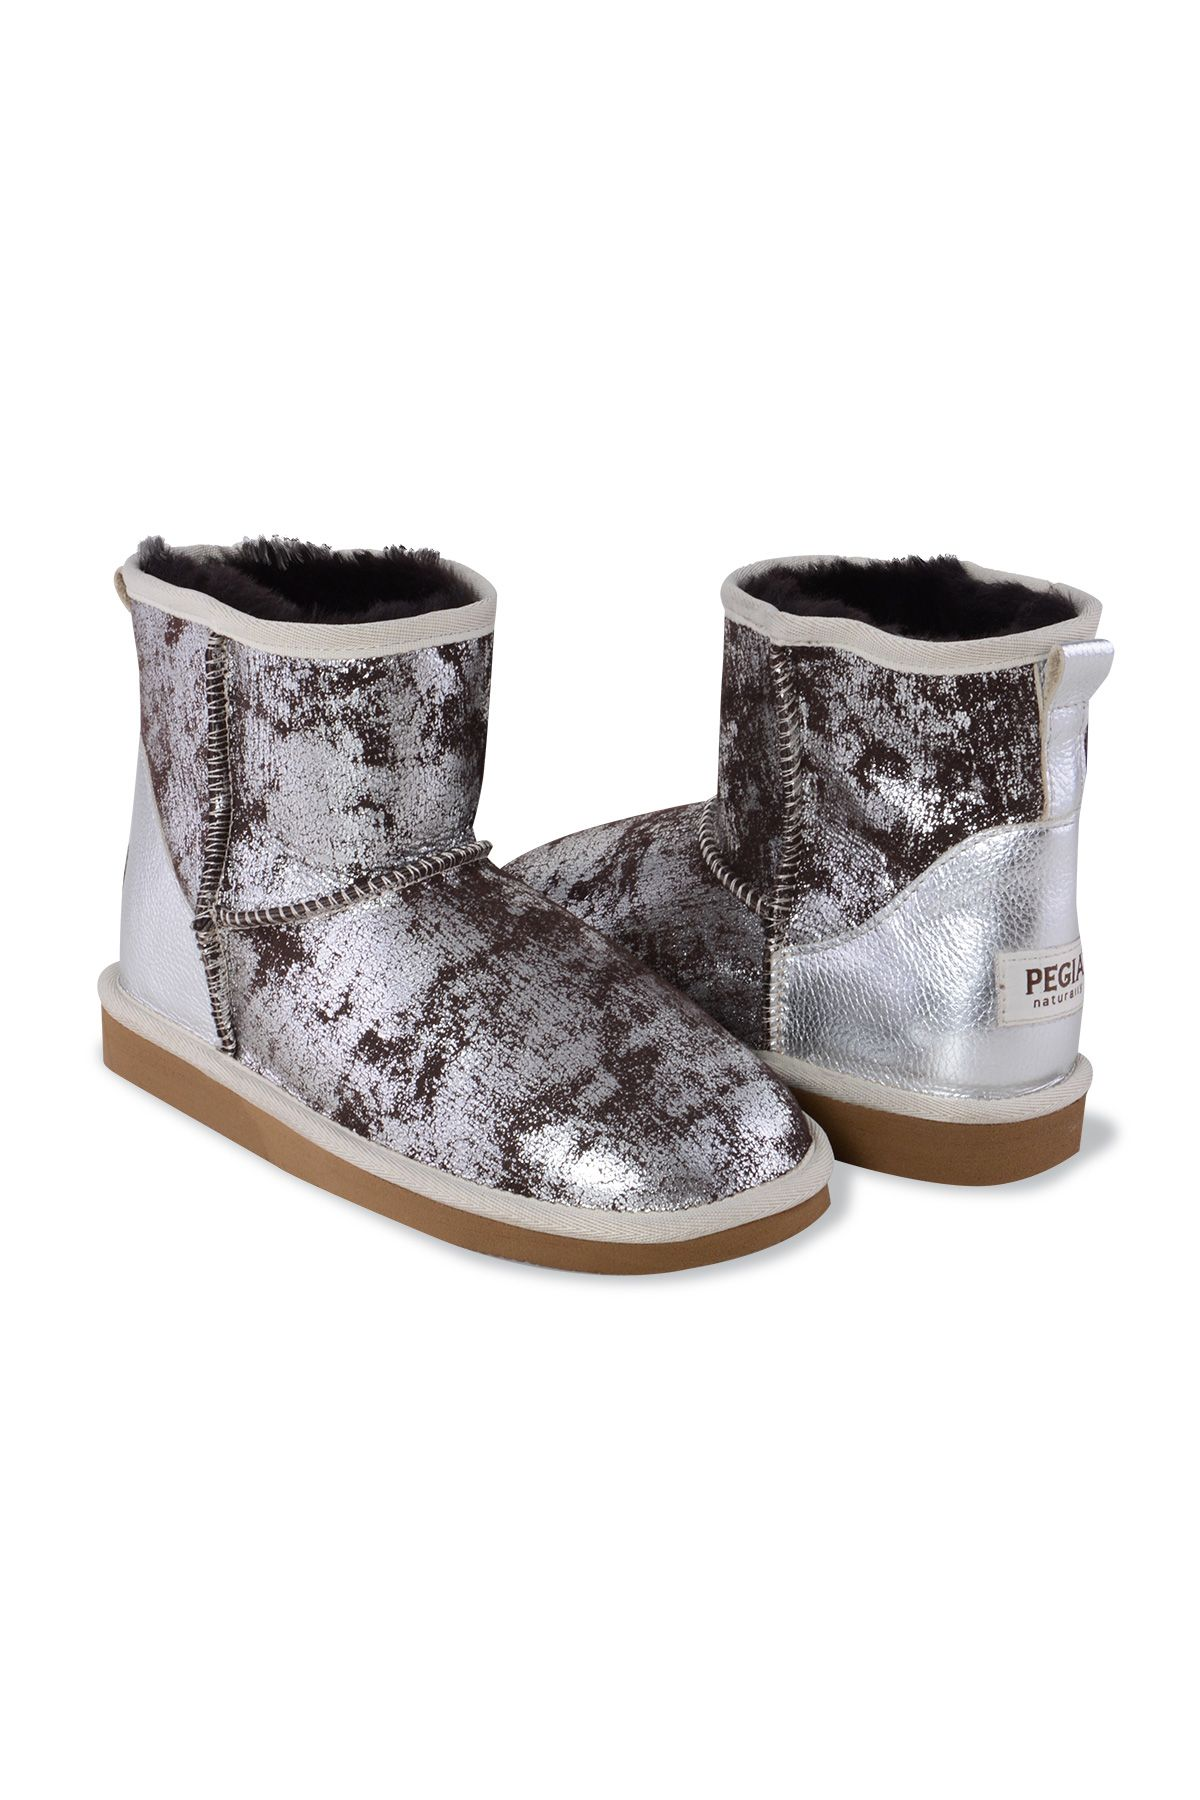 Pegia Genuine Leather & Shearling Short Women's Boots 980404 Silver